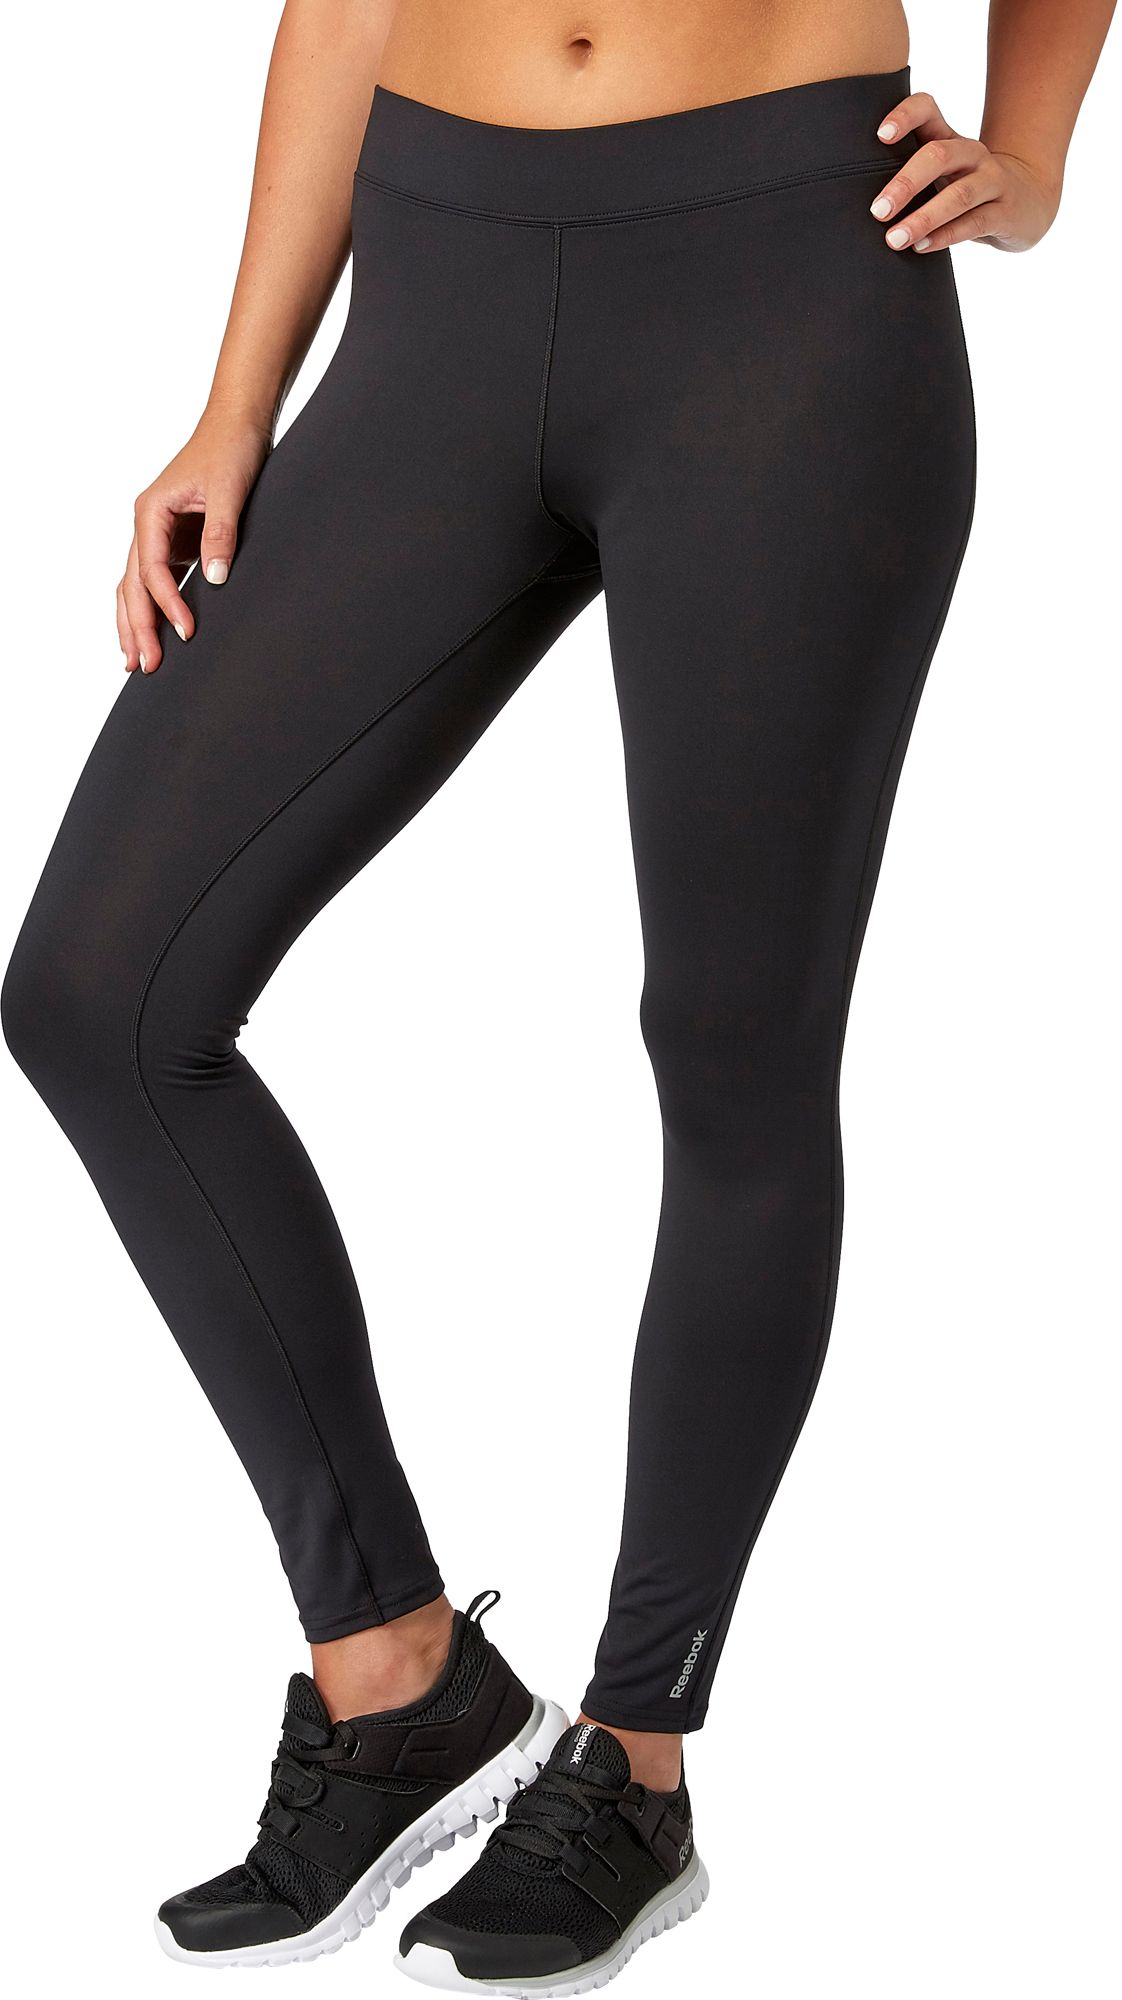 Reebok Women's Pants | DICK'S Sporting Goods